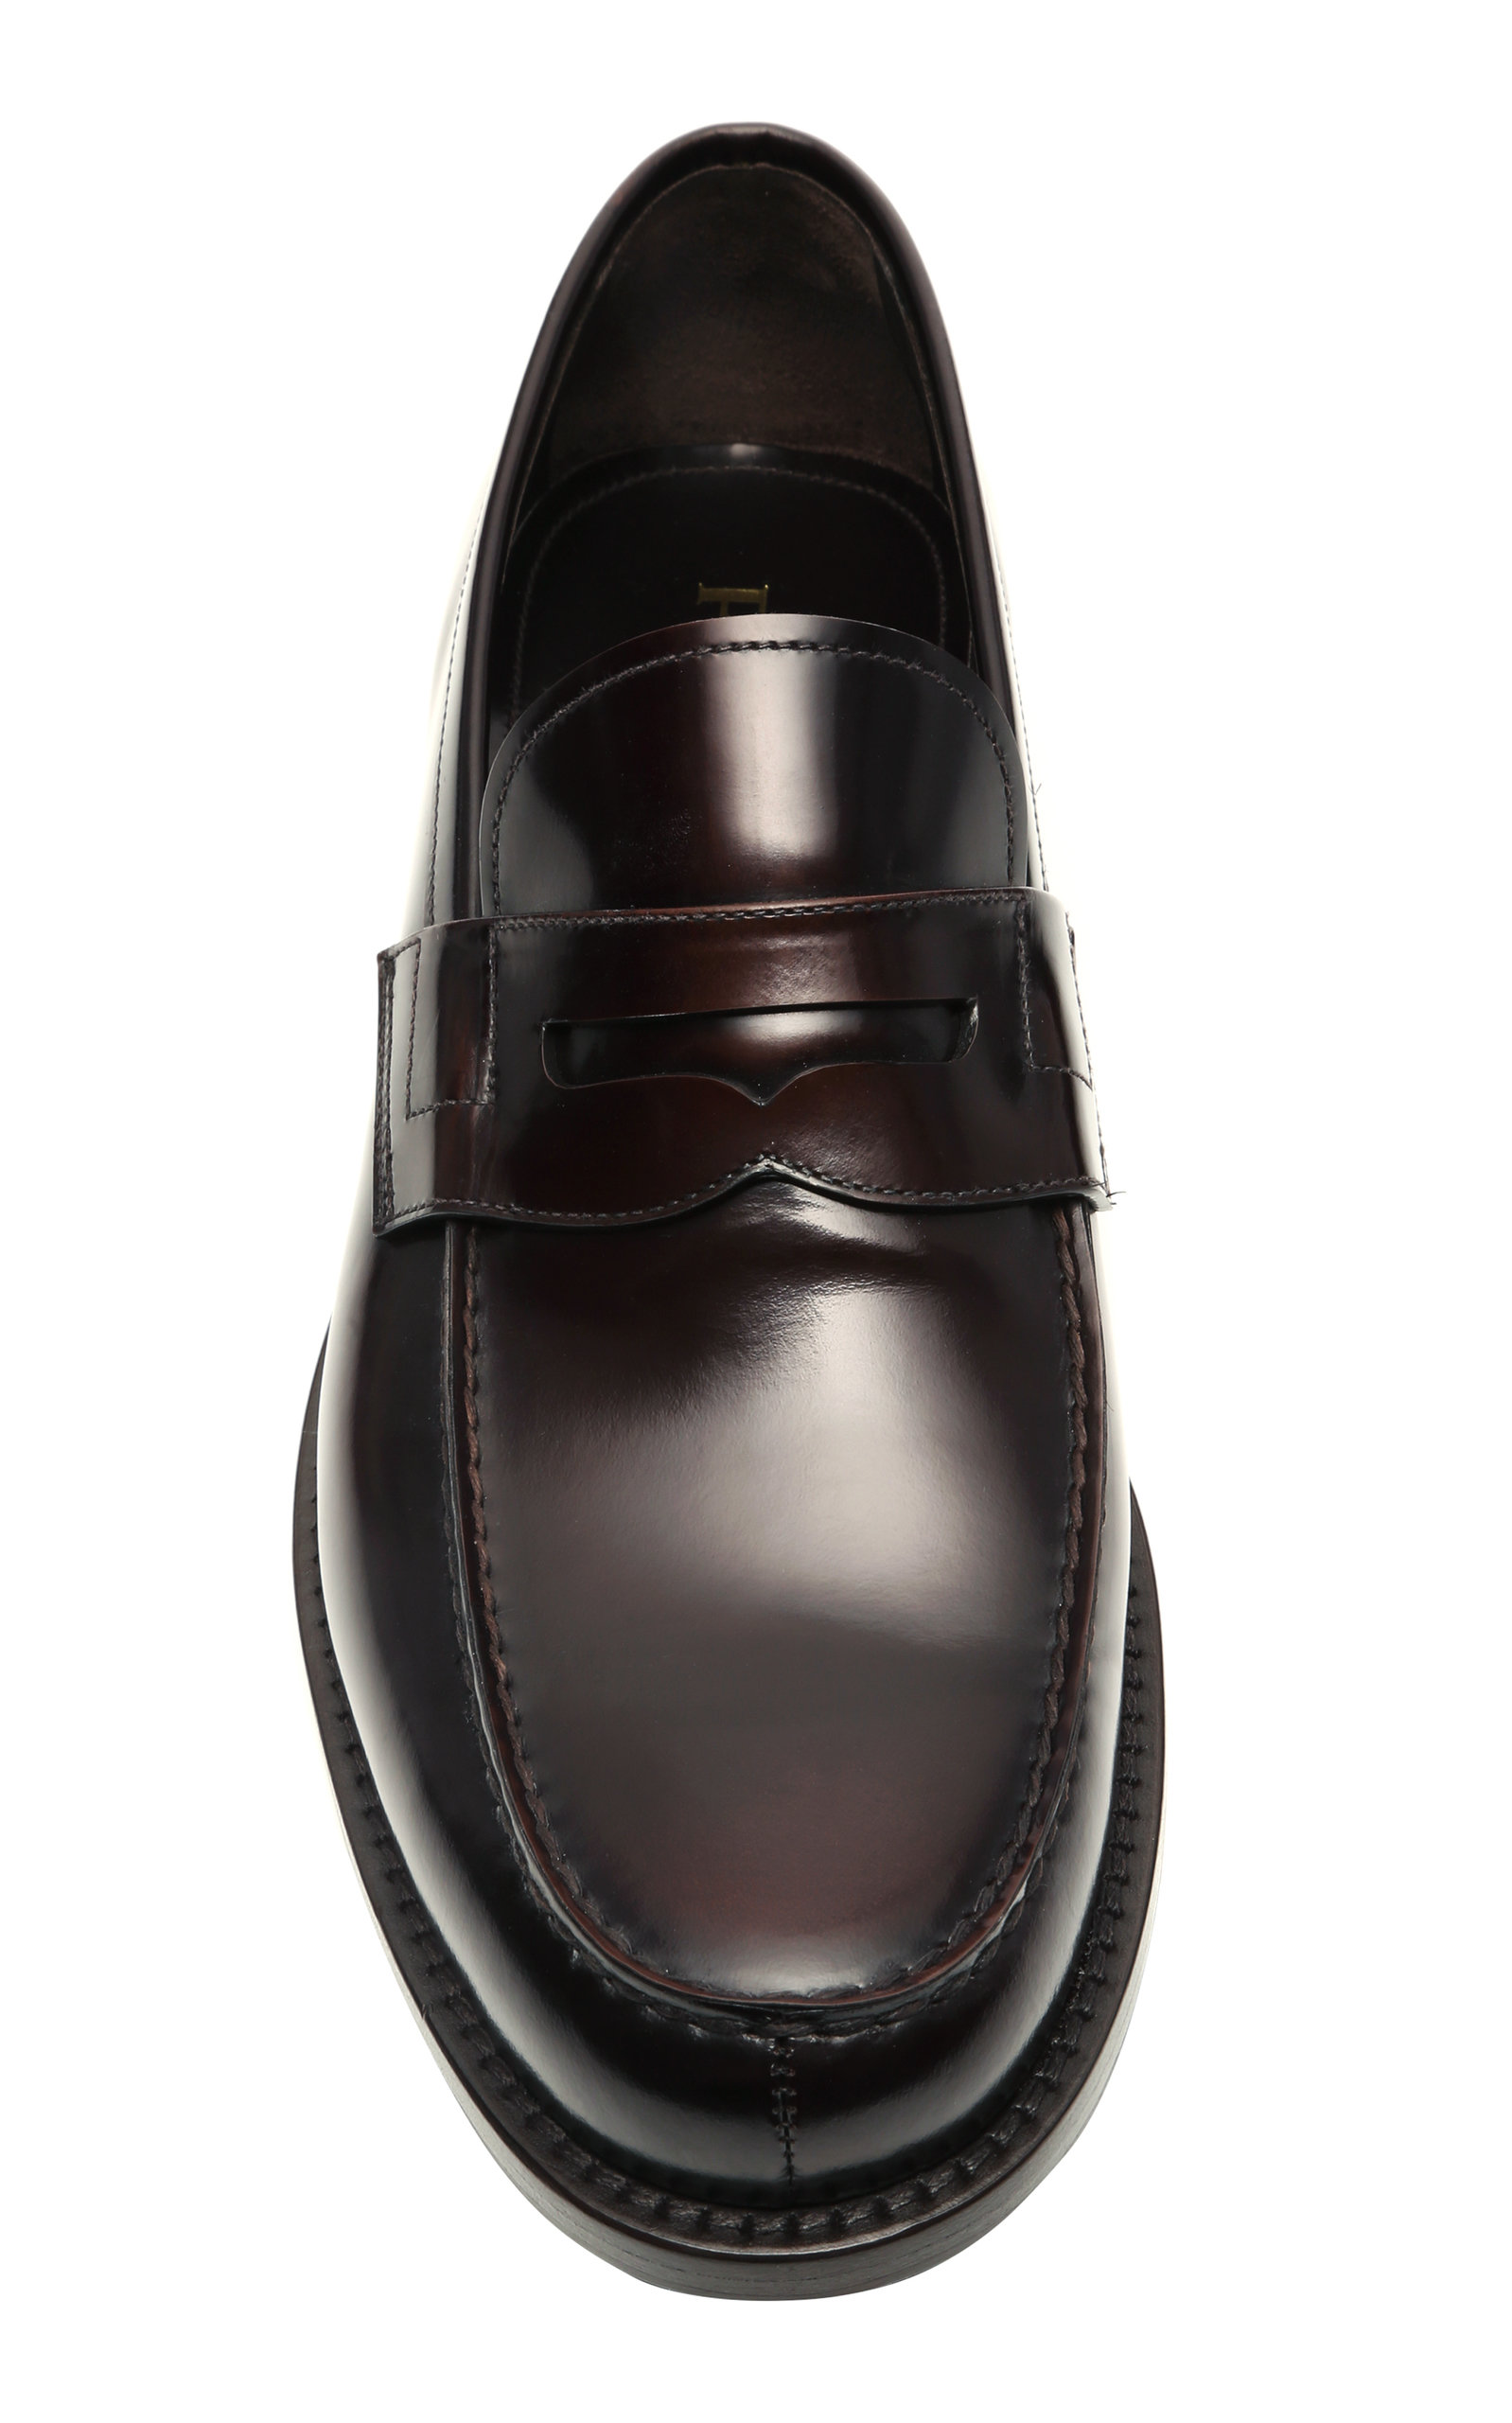 86c086859 ... inexpensive leather penny loafers by prada moda operandi 0889c 17518